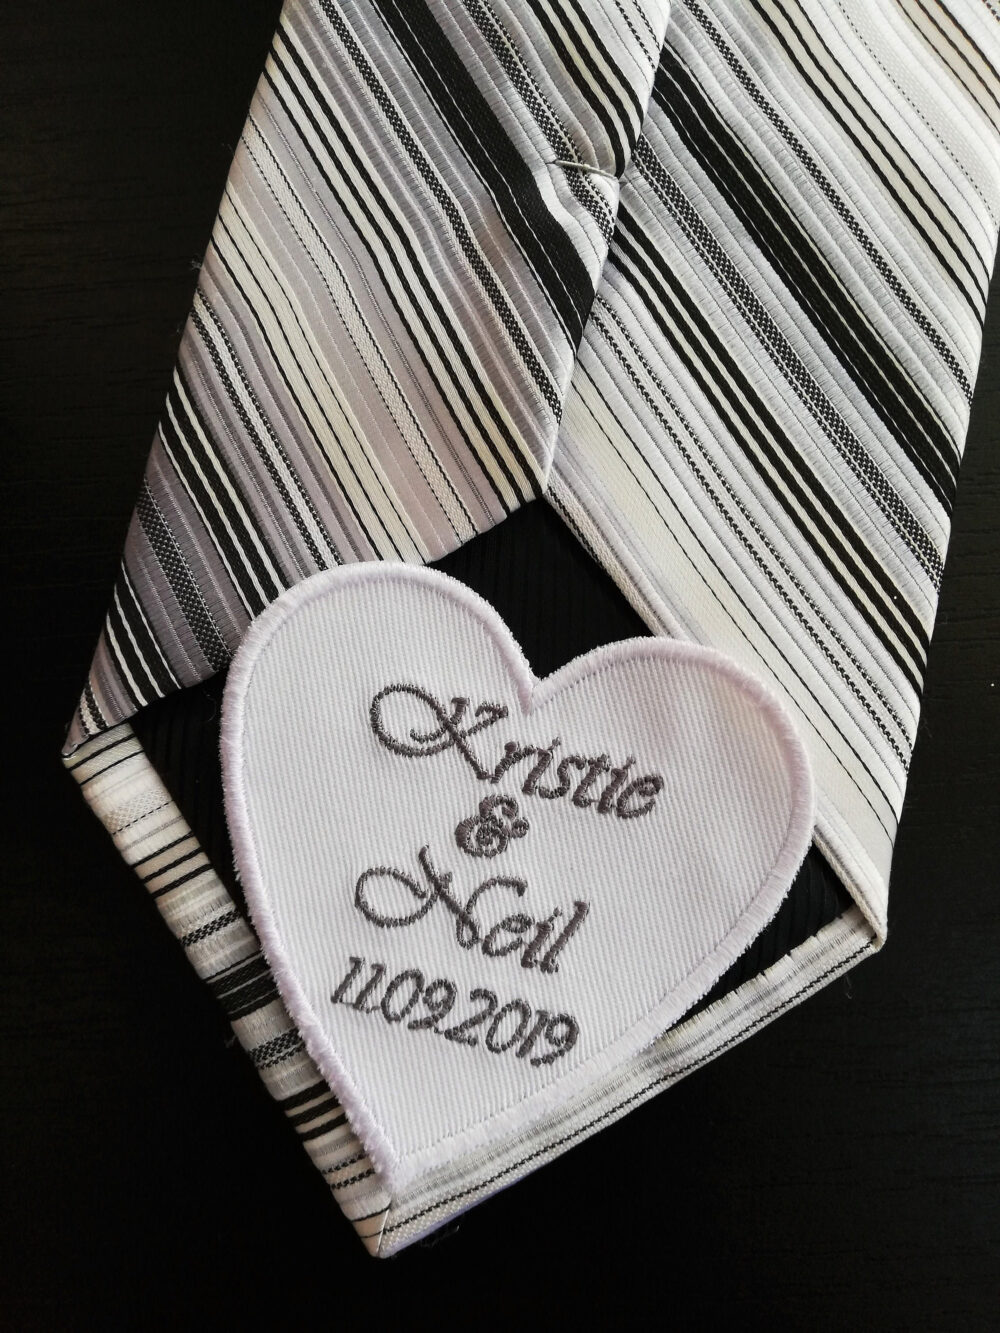 Wedding Tie Patch Groom Wedding Gifts From The Bride Day Gift Suit Label Custom Future Husband Embroidered